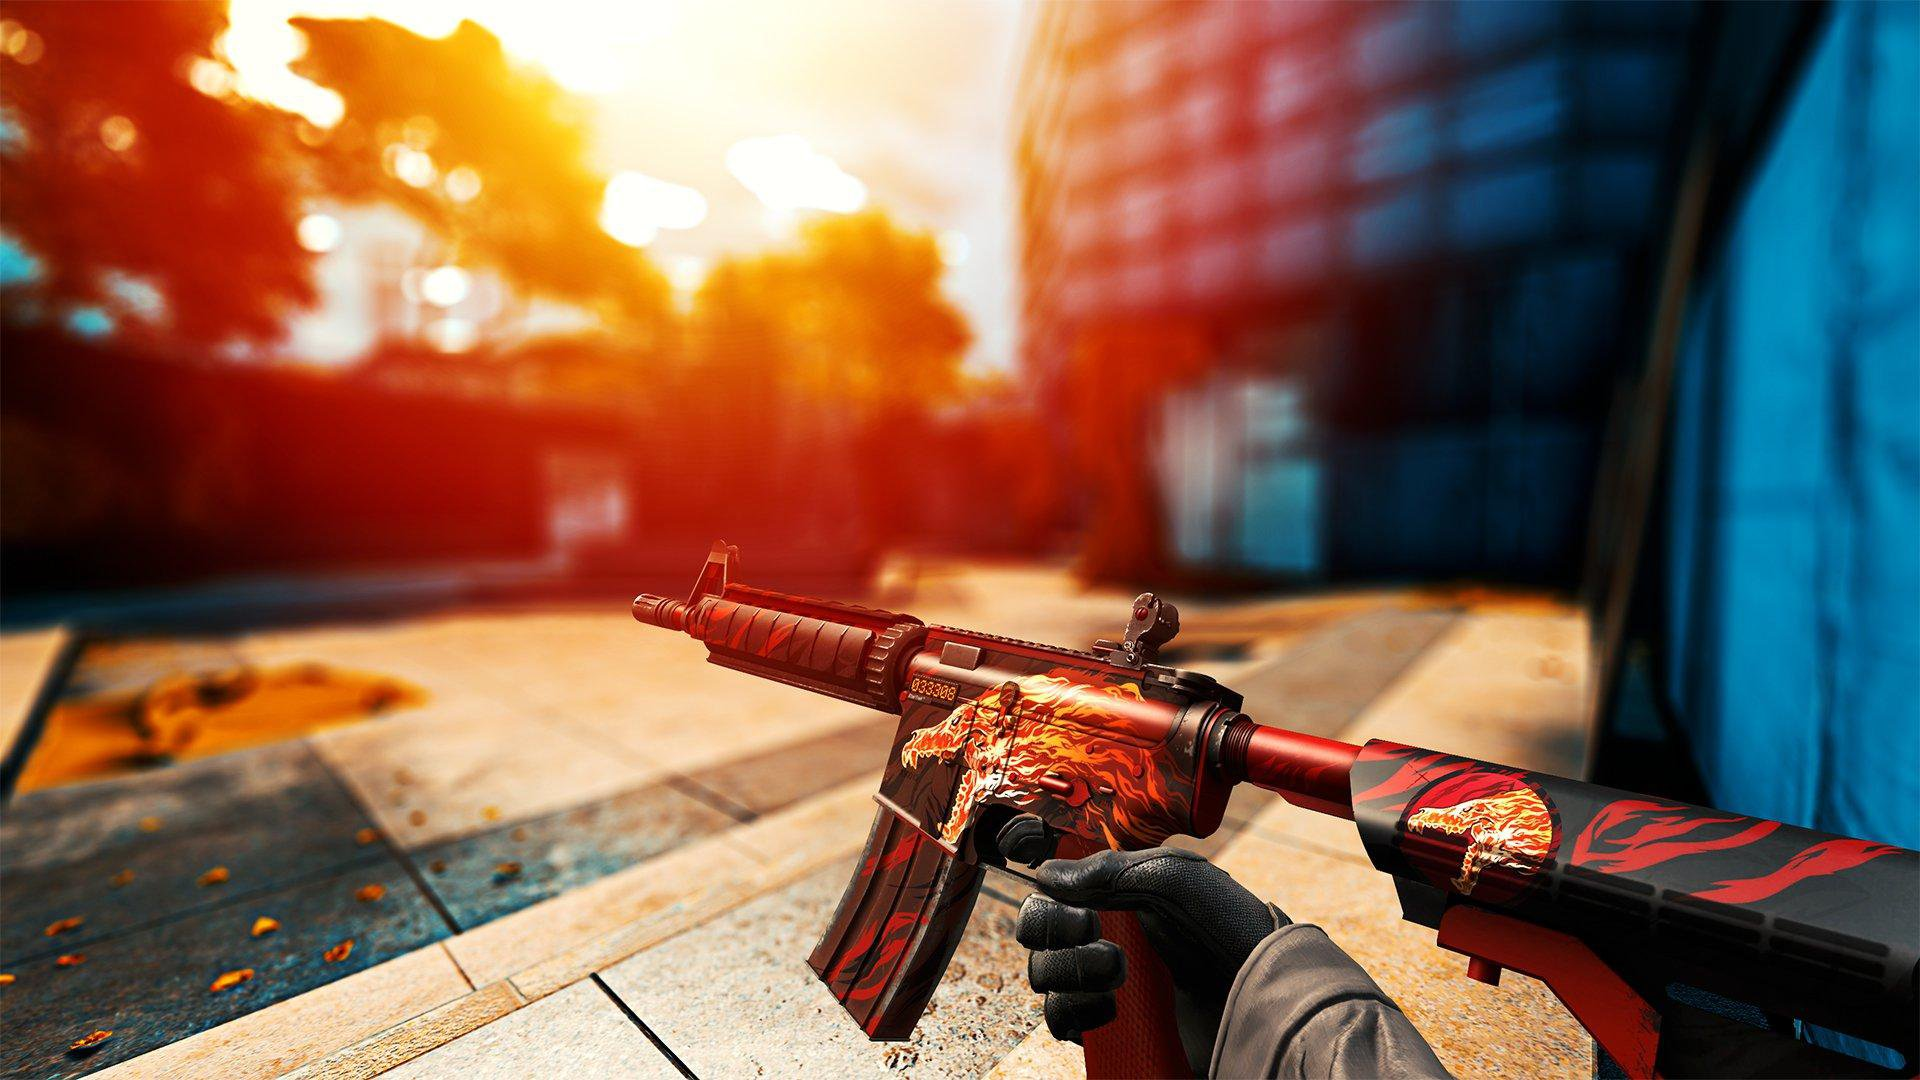 The Counter-strike global offensives game boosting service